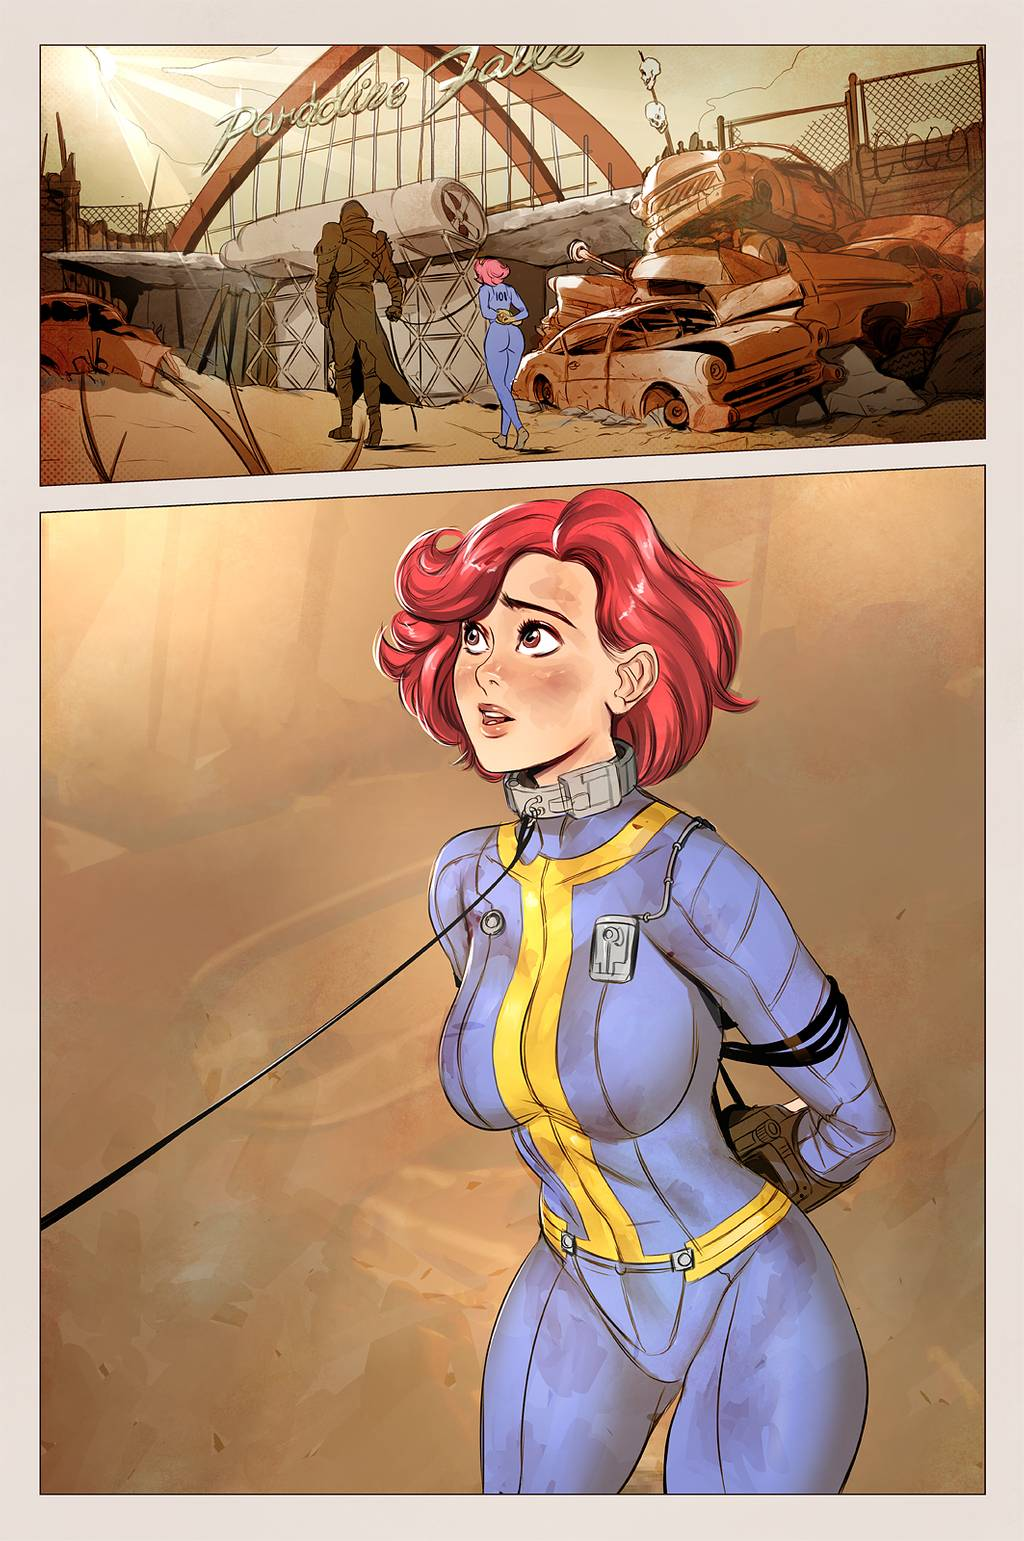 Comic-Condom-hentai-manga-Yoga-Pants-latex-bodysuit-Mind-Break-Turn-Out-Sex-Slave-cartoon-porn-comics-sex-Video-Game-Fallout-4-Fallout-76-full-color-big-breasts-latex-Bondage-collar-oral-sex-threesome-Femdom-Female-domination-Paradise-Falls-Comic Preservo hentai manga Yoga Pantalones traje de látex Mind Break Turn Out Sex Slave dibujos animados porno cómics sexo Videojuego Fallout 4 Fallout 76 a todo color pechos grandes látex Bondage collar sexo oral trío Dominación femenina Dominación femenina Paradise Falls-Bande dessinée Condom hentai manga Pantalon de yoga Body en latex Mind Break Turn Out Sex Esclave BD de bandes dessinées pornos de sexe Jeu vidéo Fallout 4 Fallout 76 Seins énormes en latex au col Bondage sexe oral trio Femdom Domination féminine Paradise Falls-コミックコンドームヘンタイマンガヨガパンツラテックスボディースーツマインドブレイクアウトセックス奴隷漫画ポルノ漫画セックスビデオゲームフォールアウト4フォールアウト76フルカラー巨乳ラテックスボンデージ襟オーラルセックス三人組女王様支配女神の楽園滝